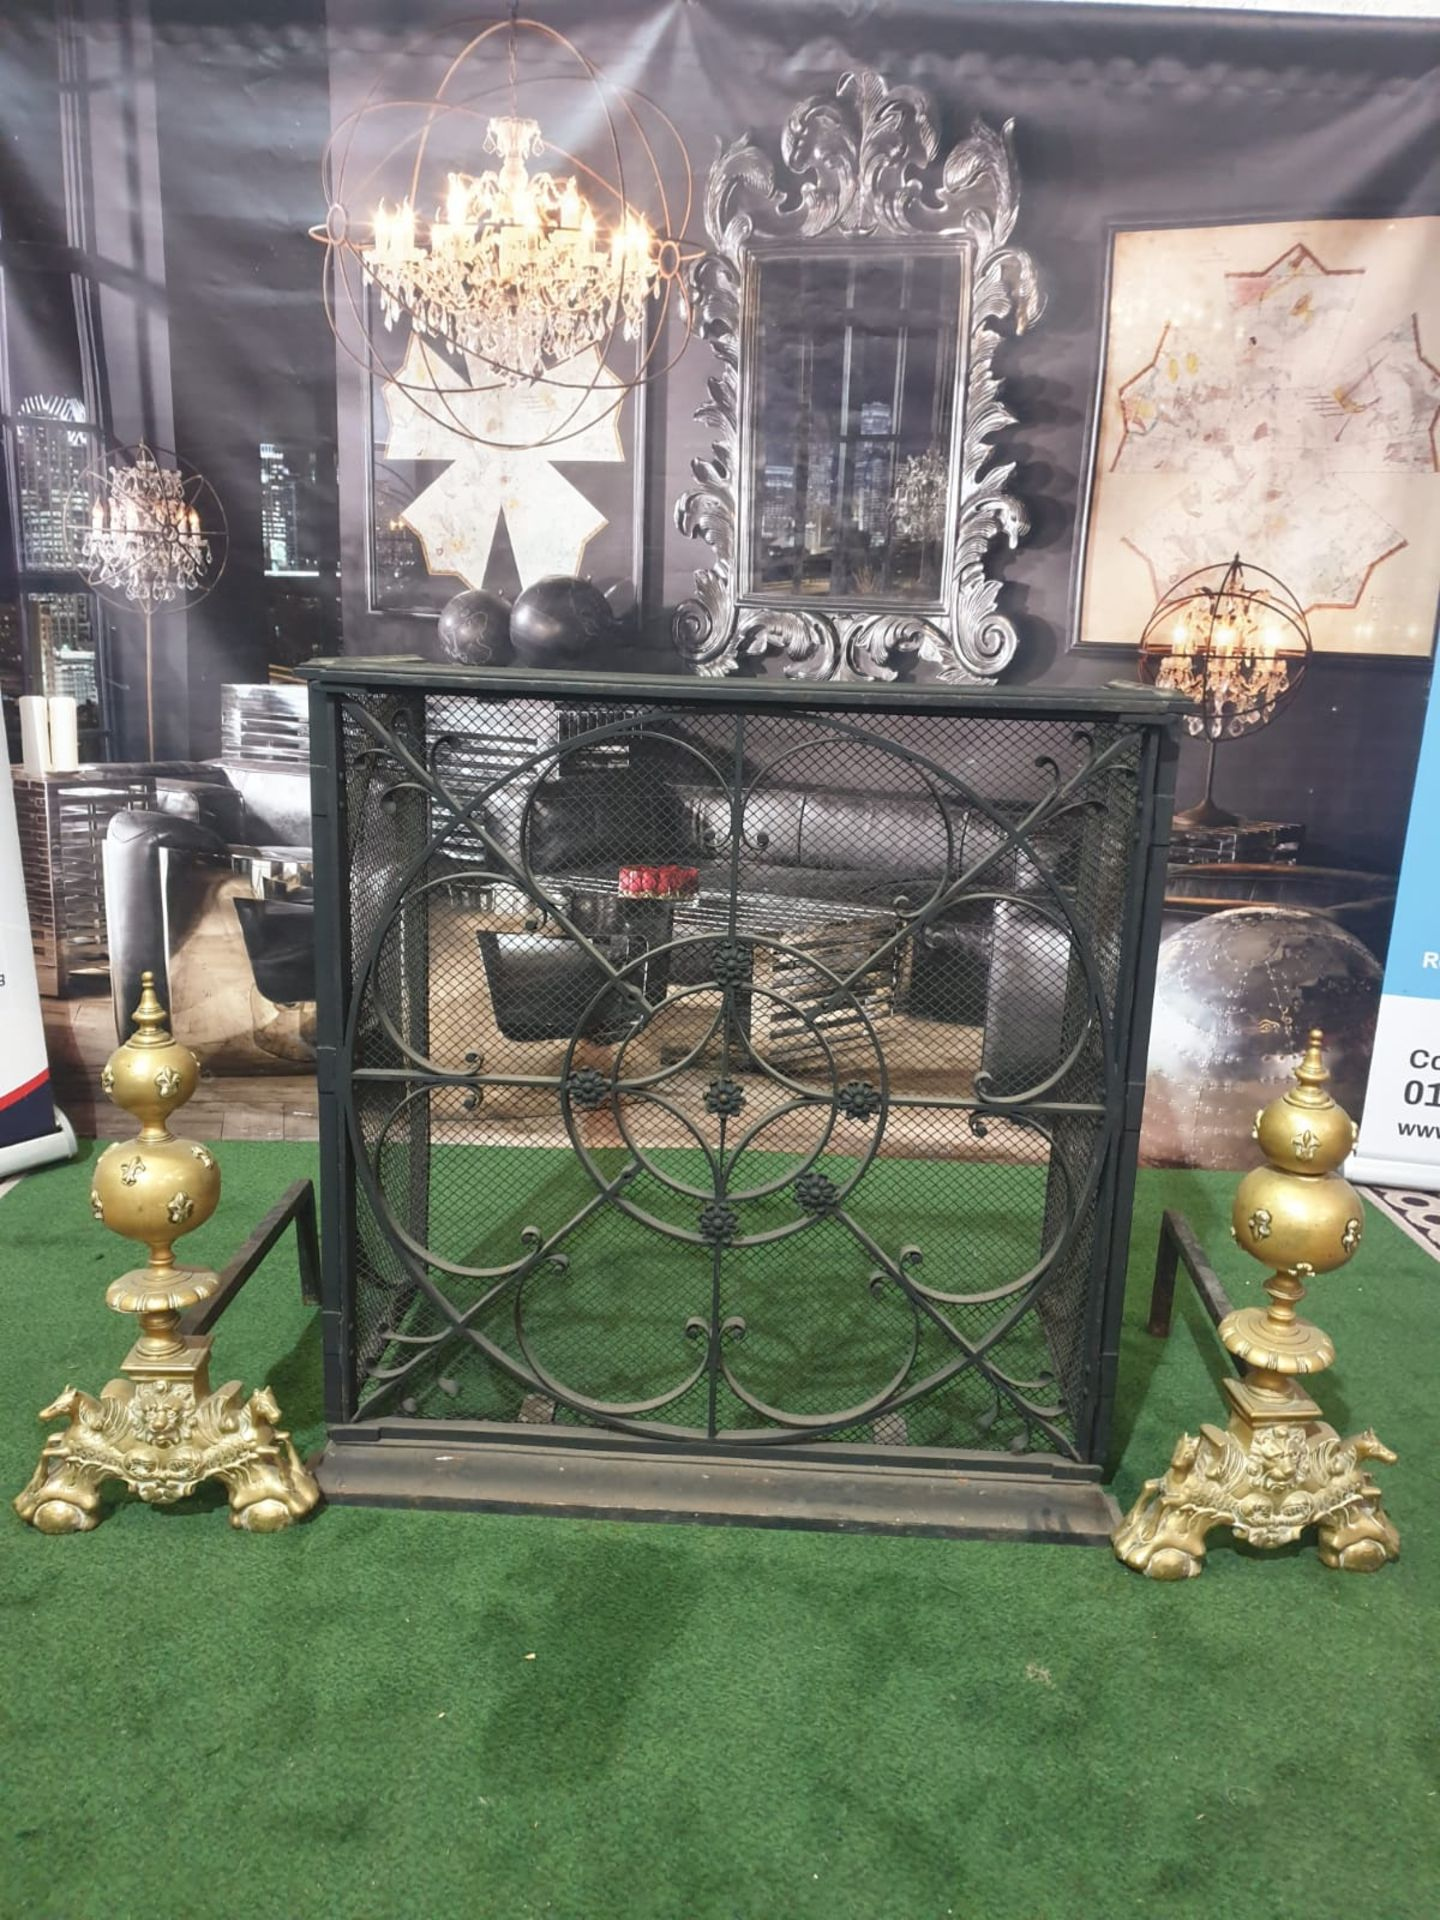 A cast metal fire guard with a pair of Brass Fire Andirons Ornate yet simple and elegant design in - Image 3 of 3